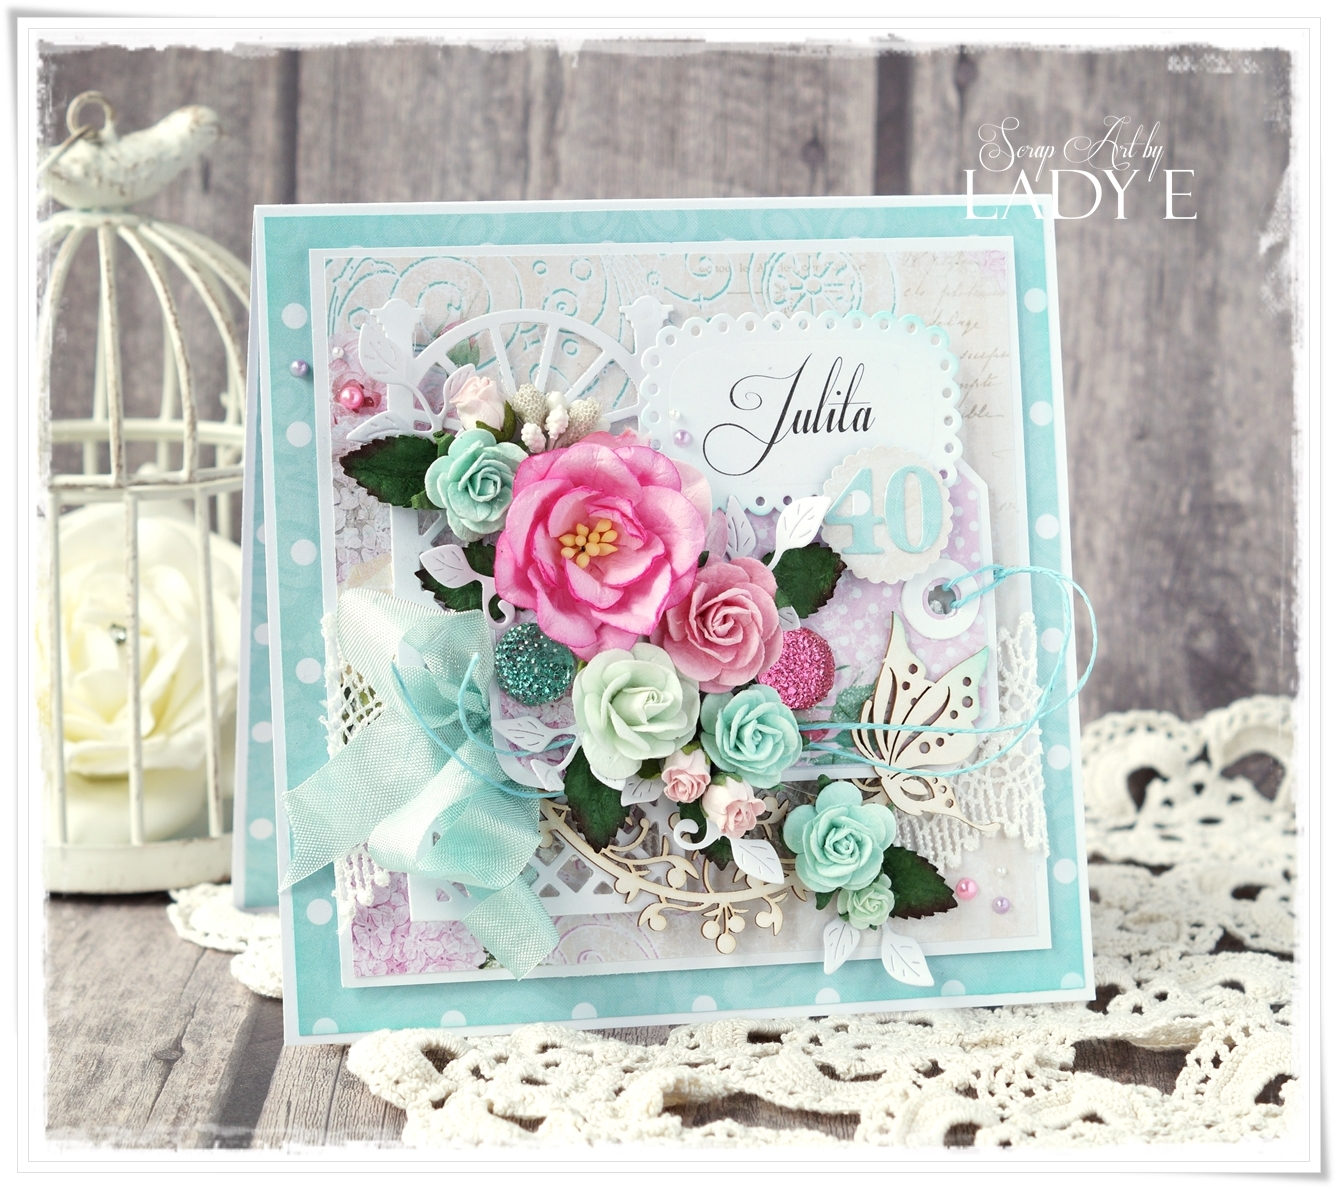 40th Birthday Card Wild Orchid Crafts Dt Scrap Art By